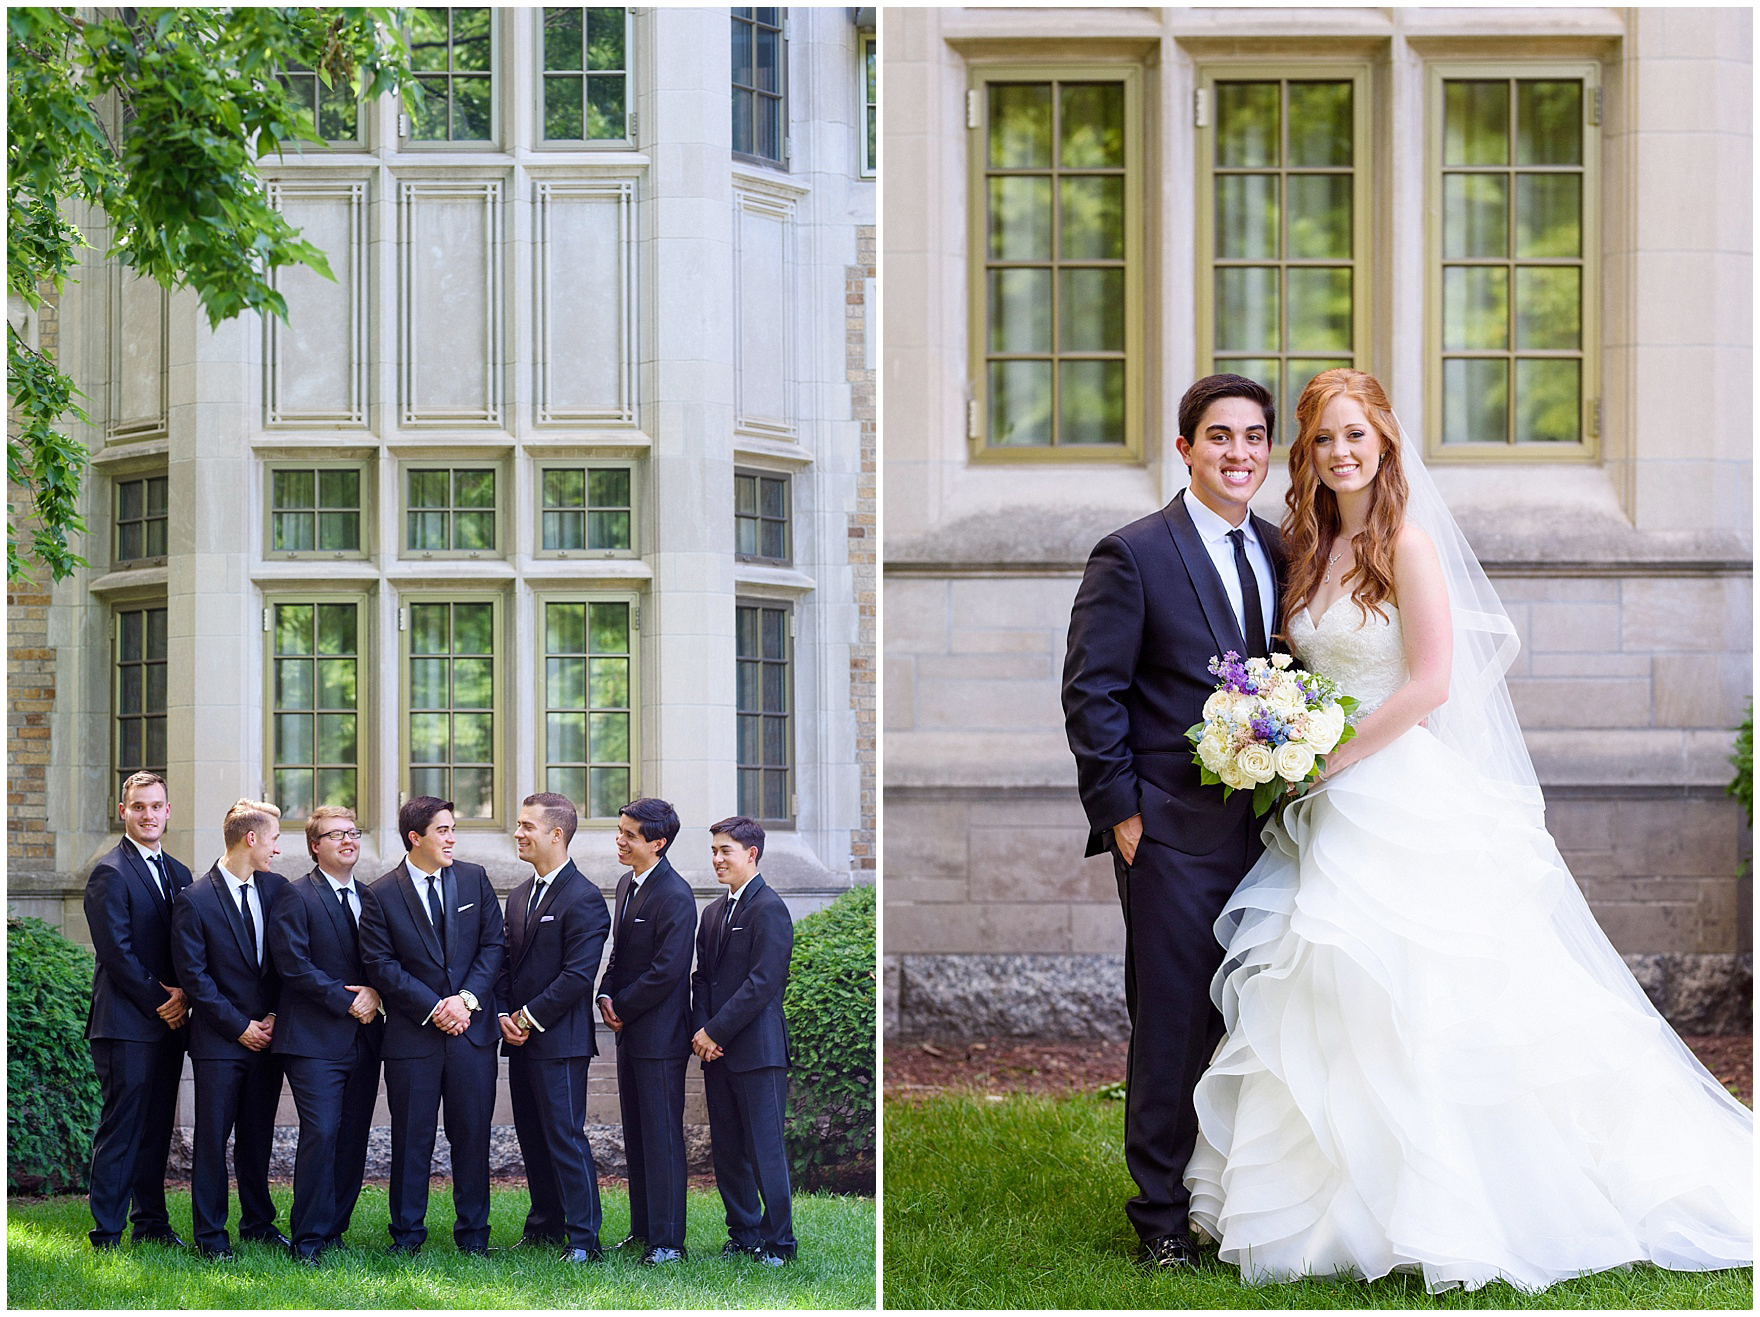 The groom and his groomsmen pose for portraits on campus during a University of Notre Dame wedding.